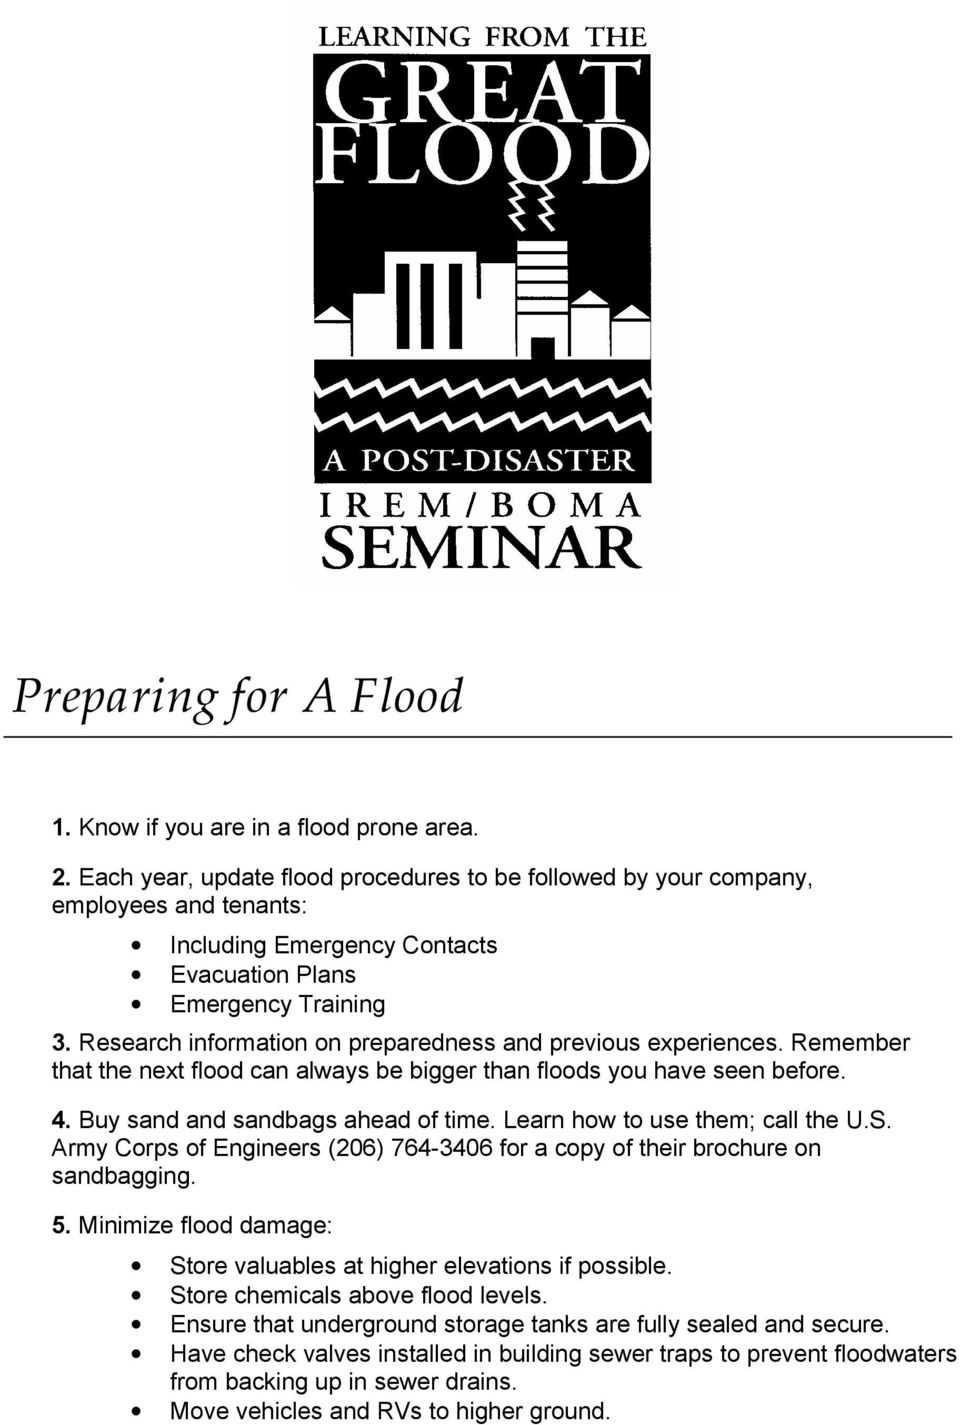 Research information on preparedness and previous experiences. Remember that the next flood can always be bigger than floods you have seen before. 4. Buy sand and sandbags ahead of time.